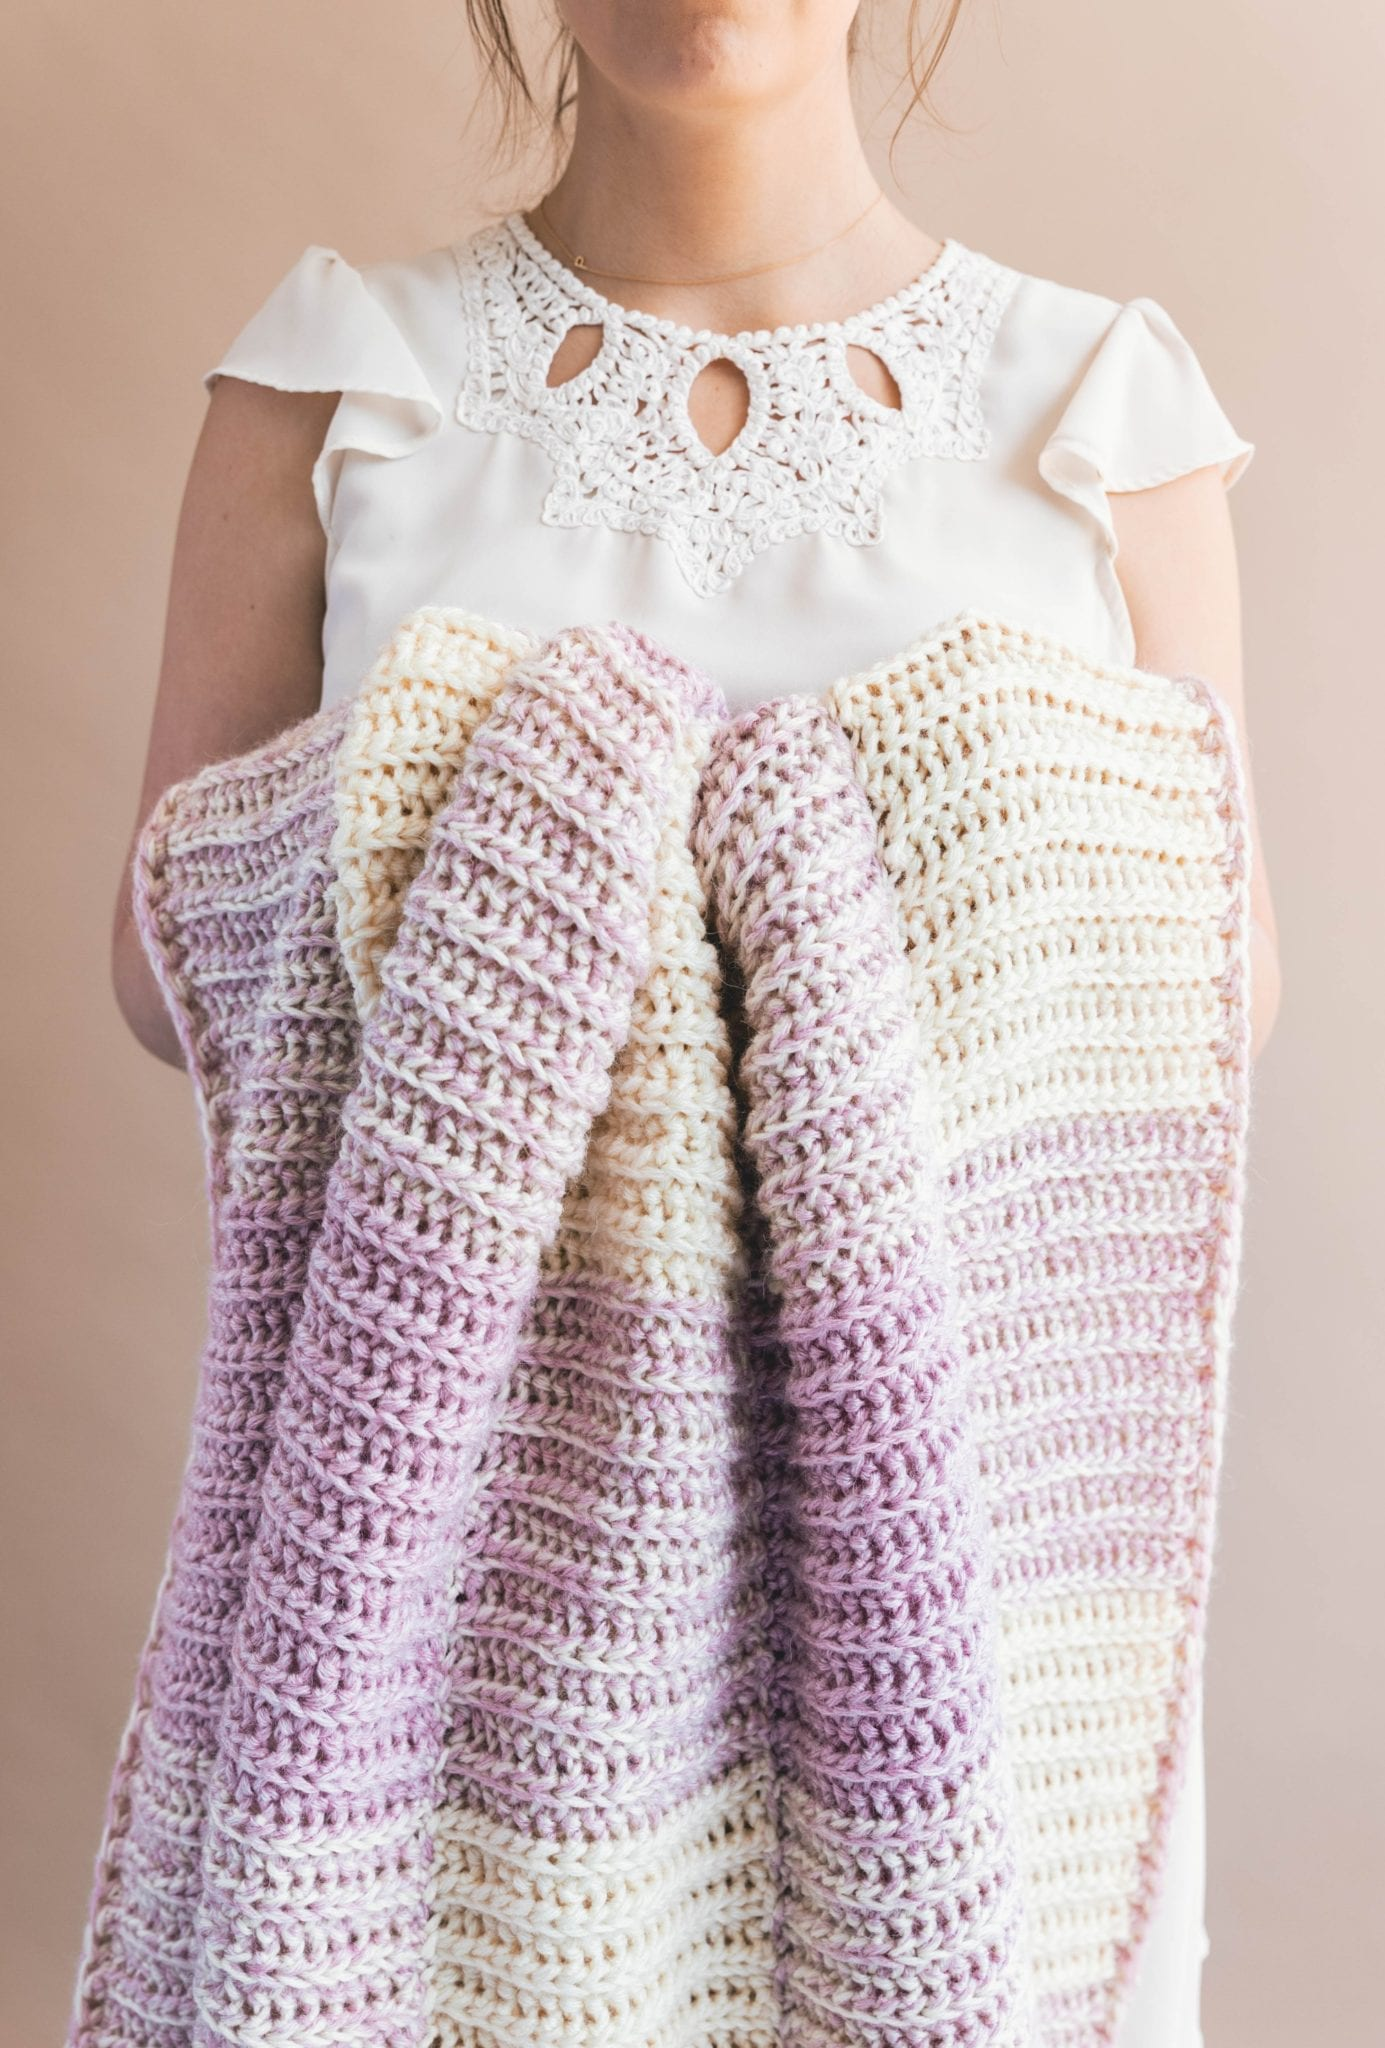 I Think A Lot Of People Myself Included Get Caught Up In Making Sweaters And Garments During The Cooler Weather But Most Crochet Home Decor Can Be